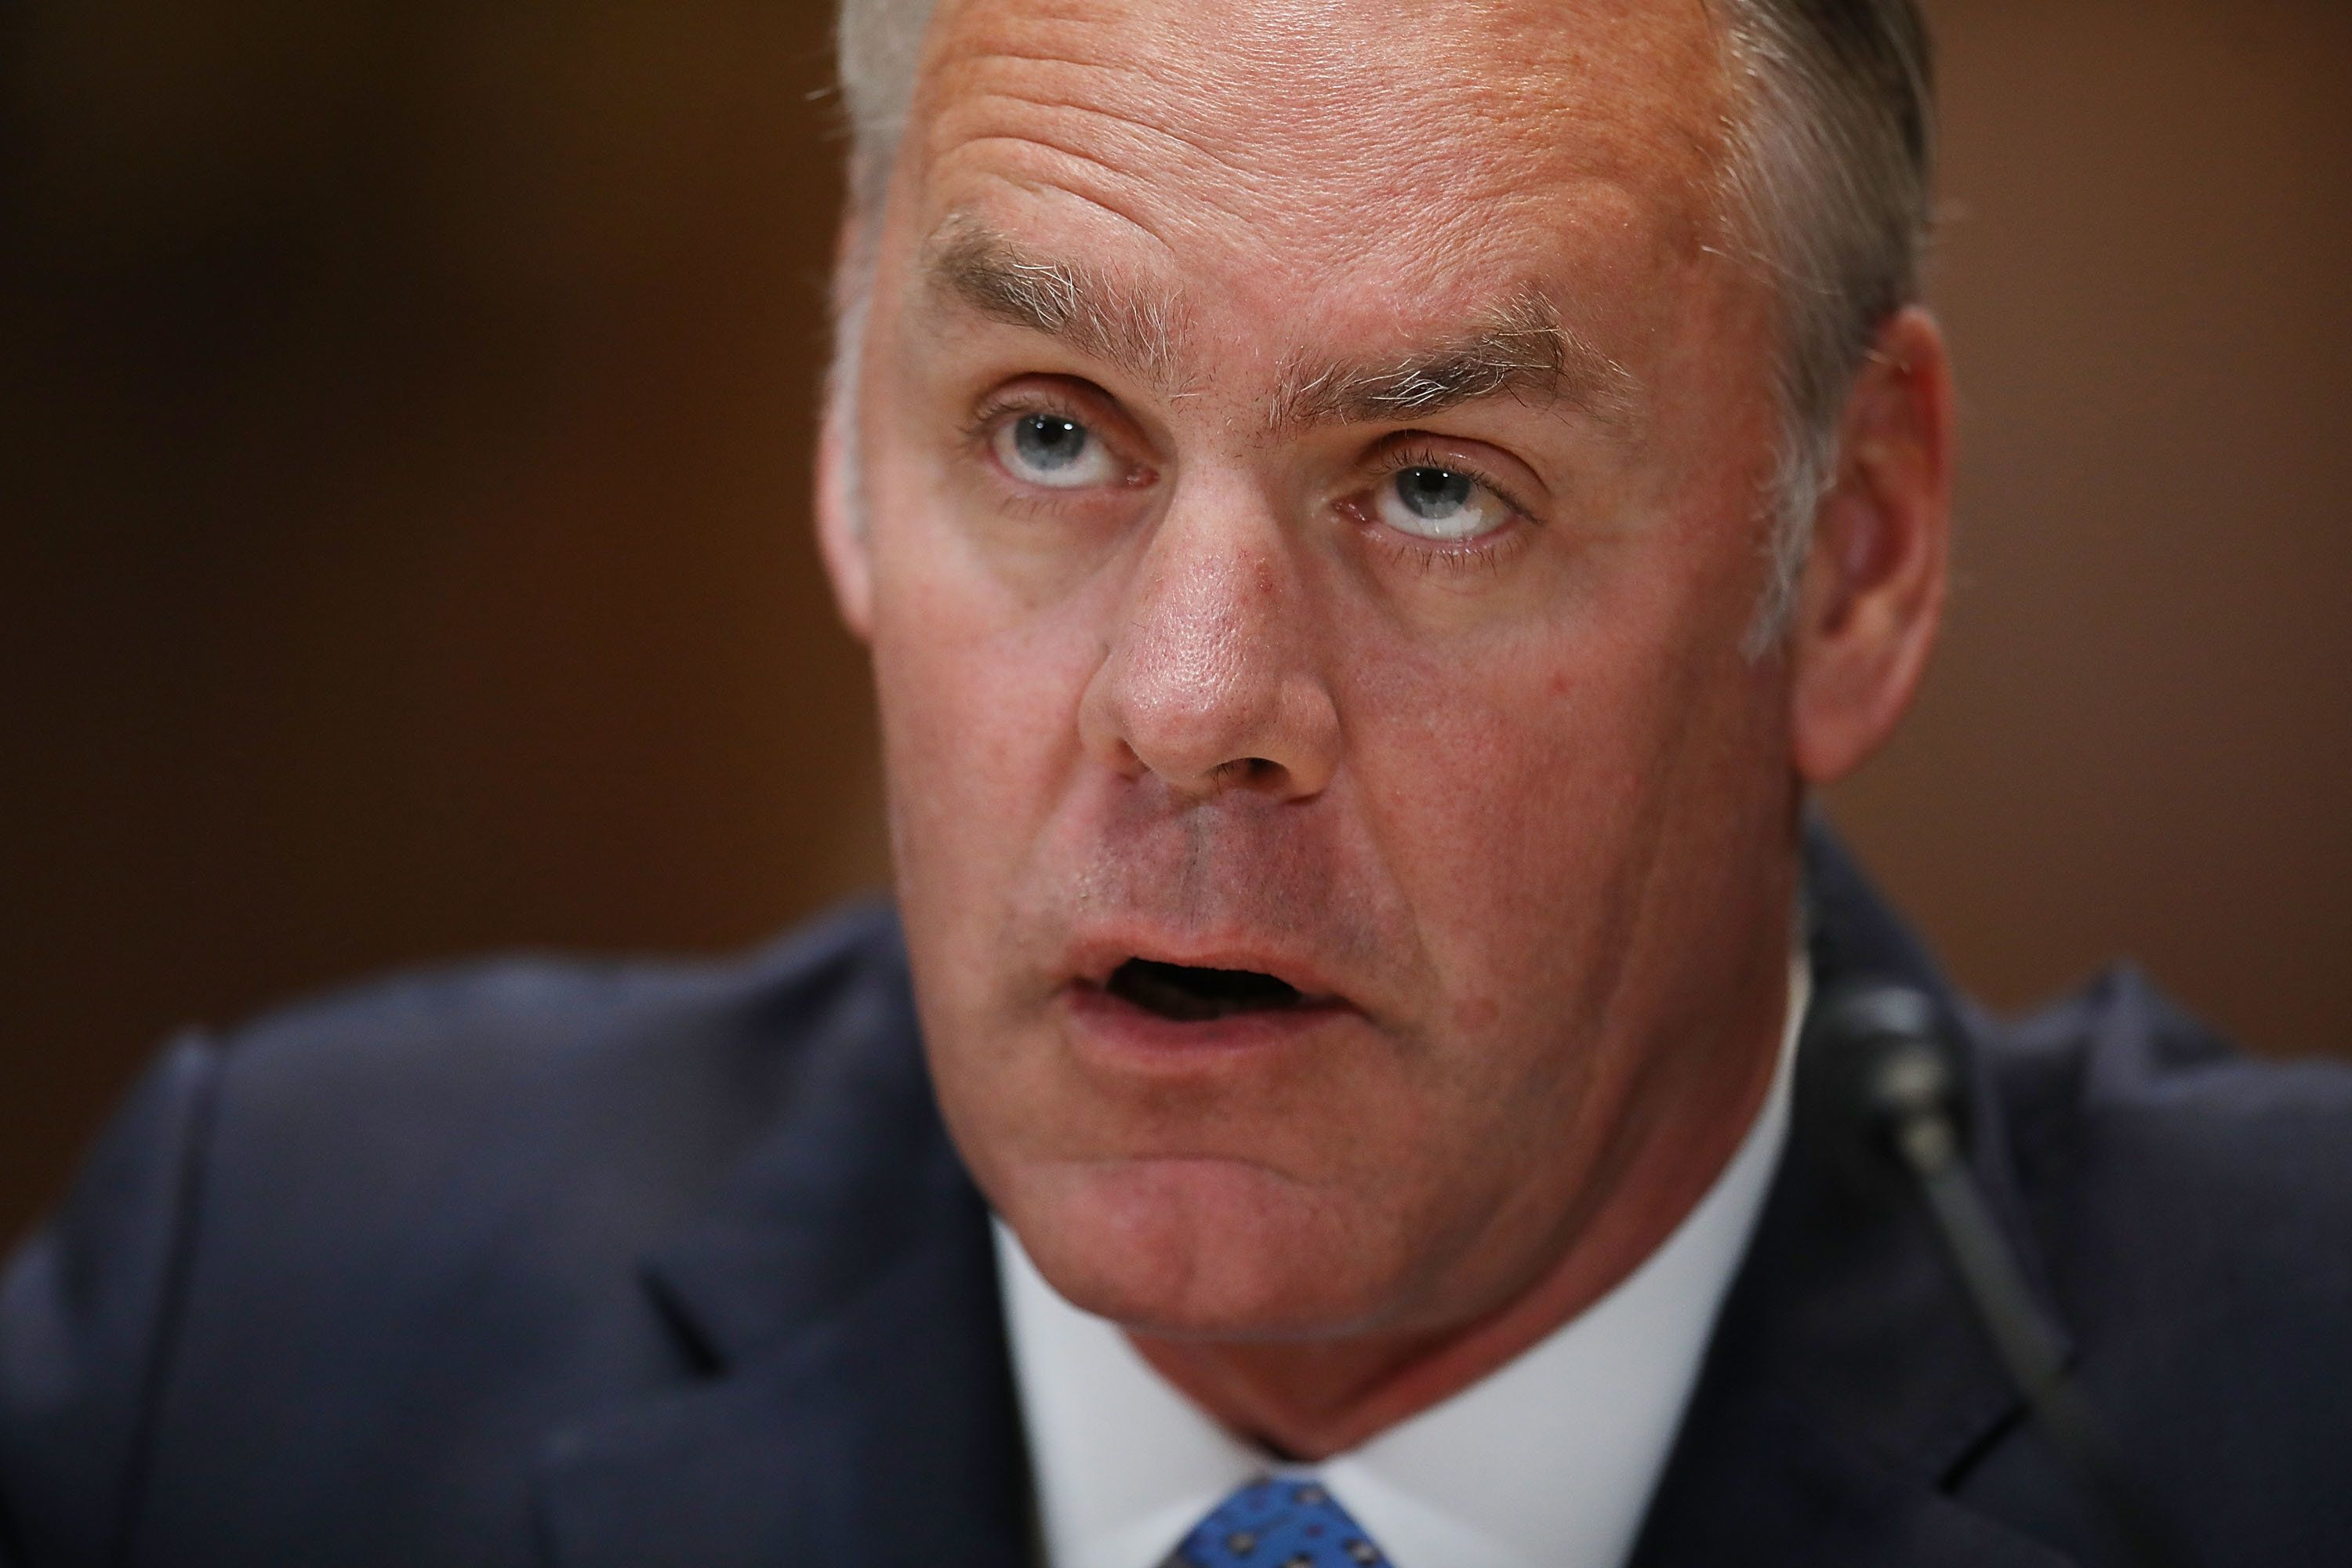 WASHINGTON, DC - MAY 10:  U.S. Interior Secretary Ryan Zinke testifies beofre the Senate Appropriations Committee's Interior, Environment, and Related Agencies Subcommittee in the Dirksen Senate Office Building on Capitol Hill May 10, 2018 in Washington, DC. Zinke testified about his department's FY2019 funding request and budget.  (Photo by Chip Somodevilla/Getty Images)